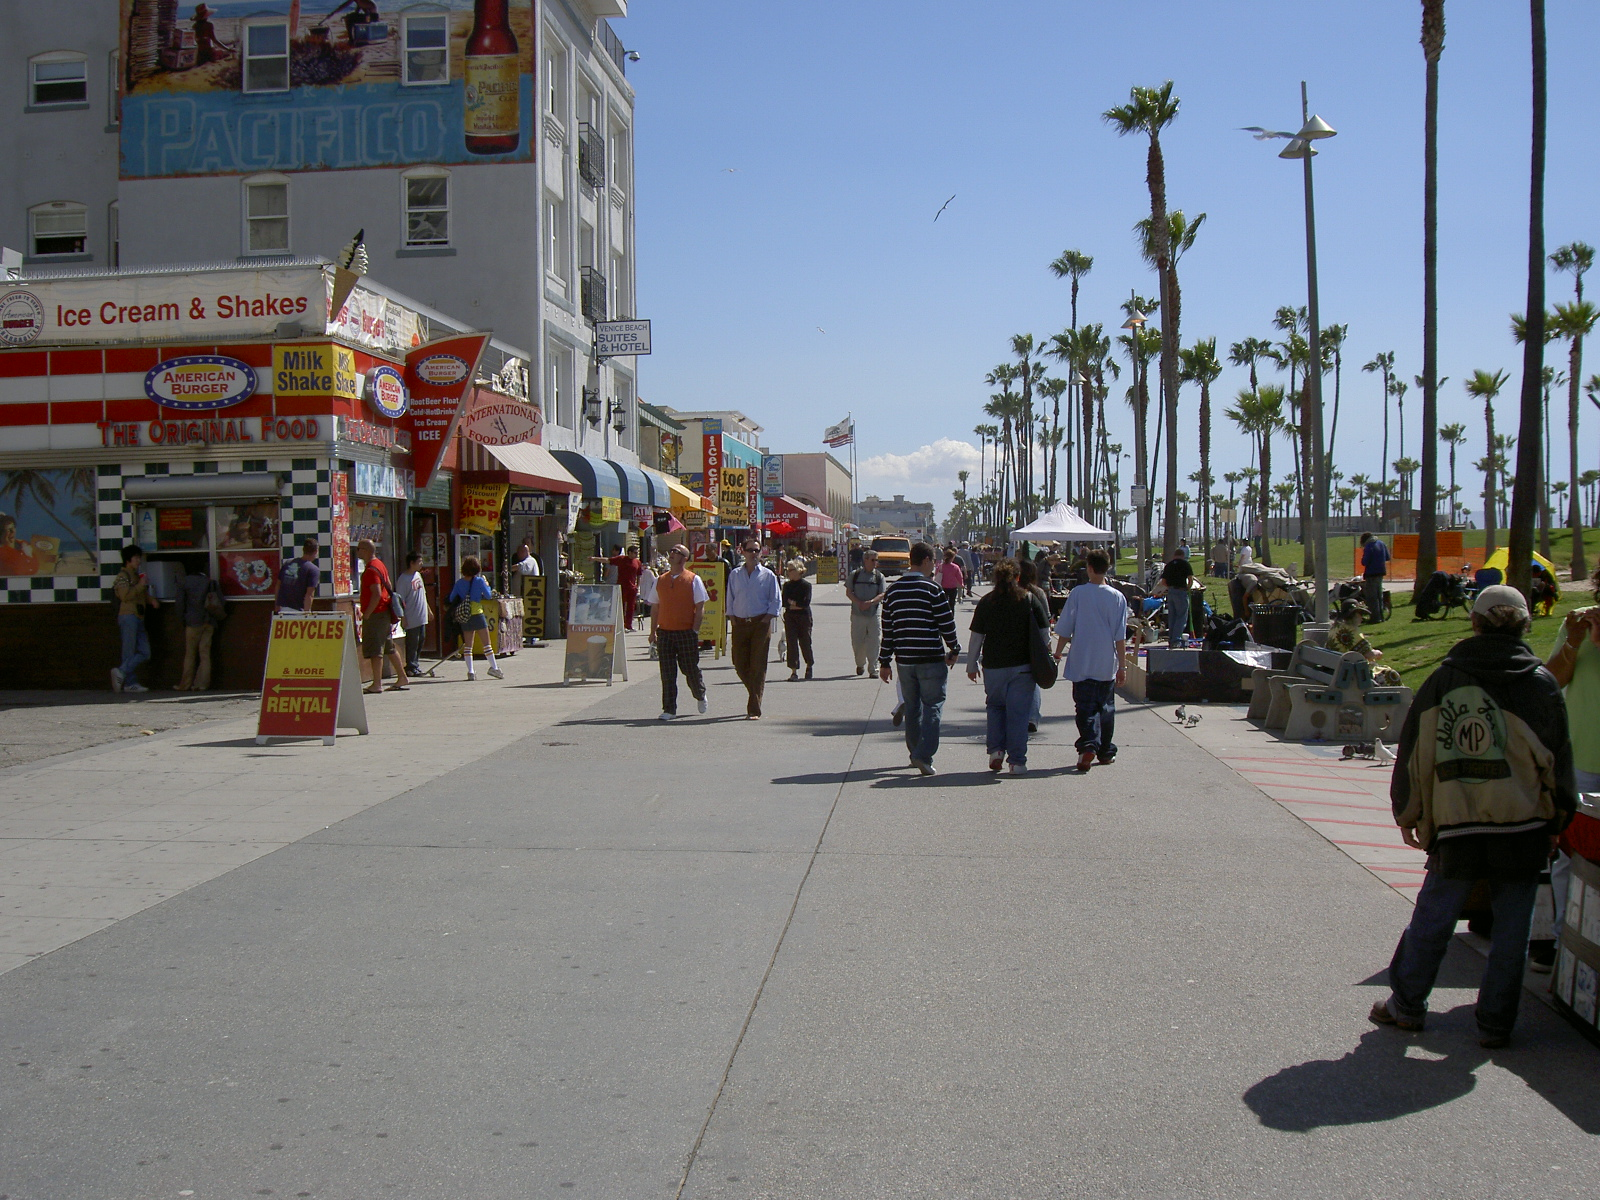 zambiese venice beach - photo#25